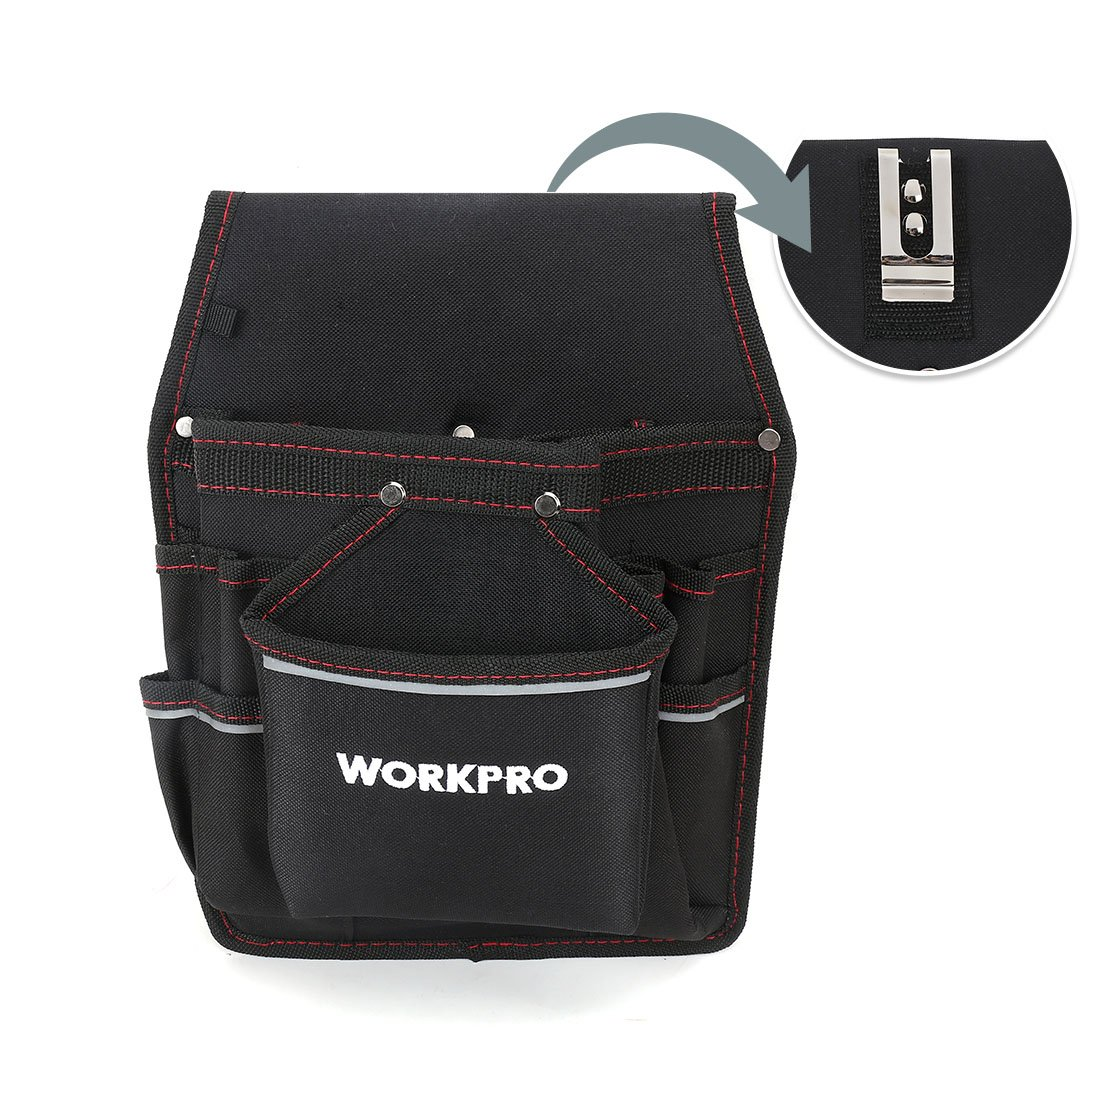 WORKPRO Maintenance Tool Pouch Electrician's Belt Tool Holder with Multiple Pockets, Organizer for Tools, Flashlight, Keys